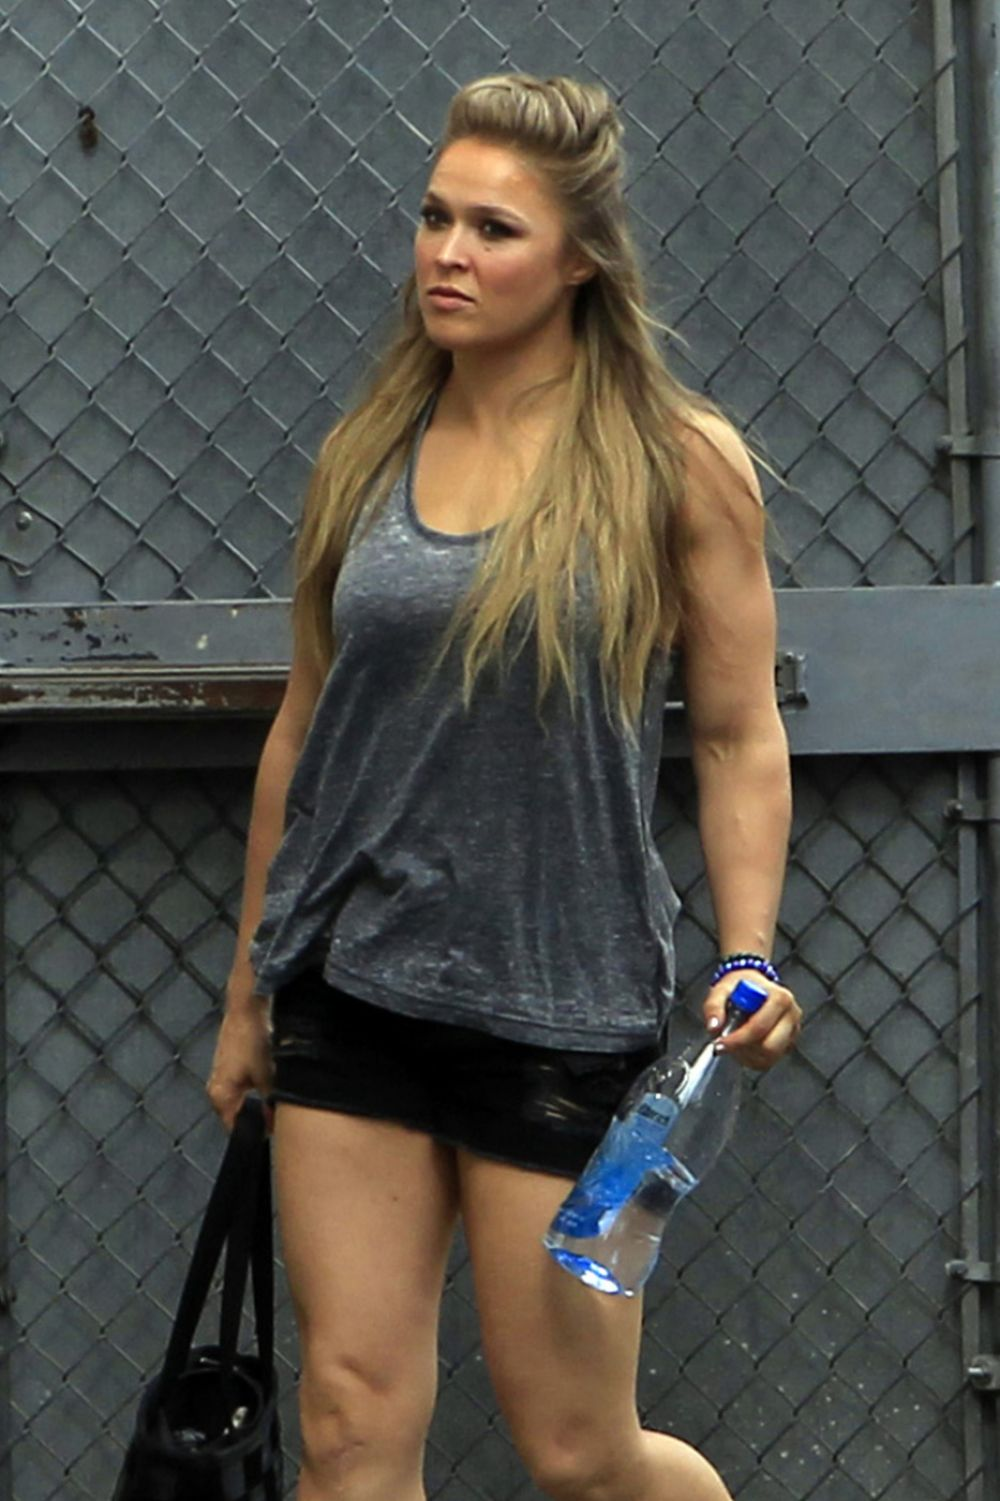 pictures Ronda rousey hottest